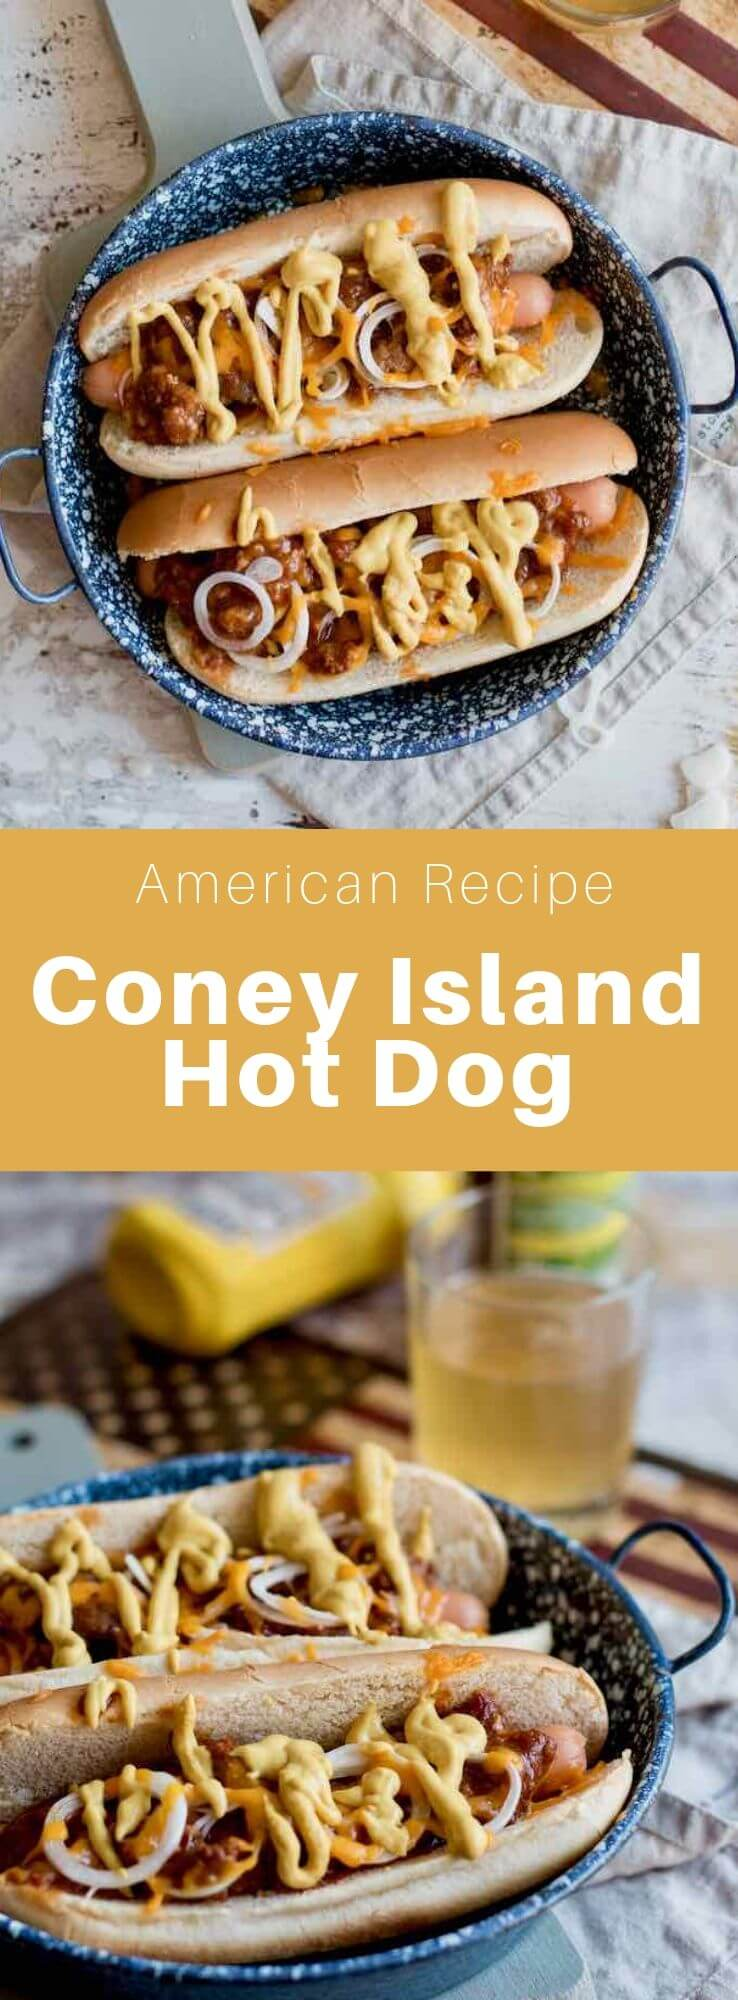 A Coney Island hot dog is a hot dog but also a popular type of restaurant in the northern United States, especially in Michigan. #AmericanRecipe #AmericanFood #AmericanCuisine #WorldCuisine #196flavors